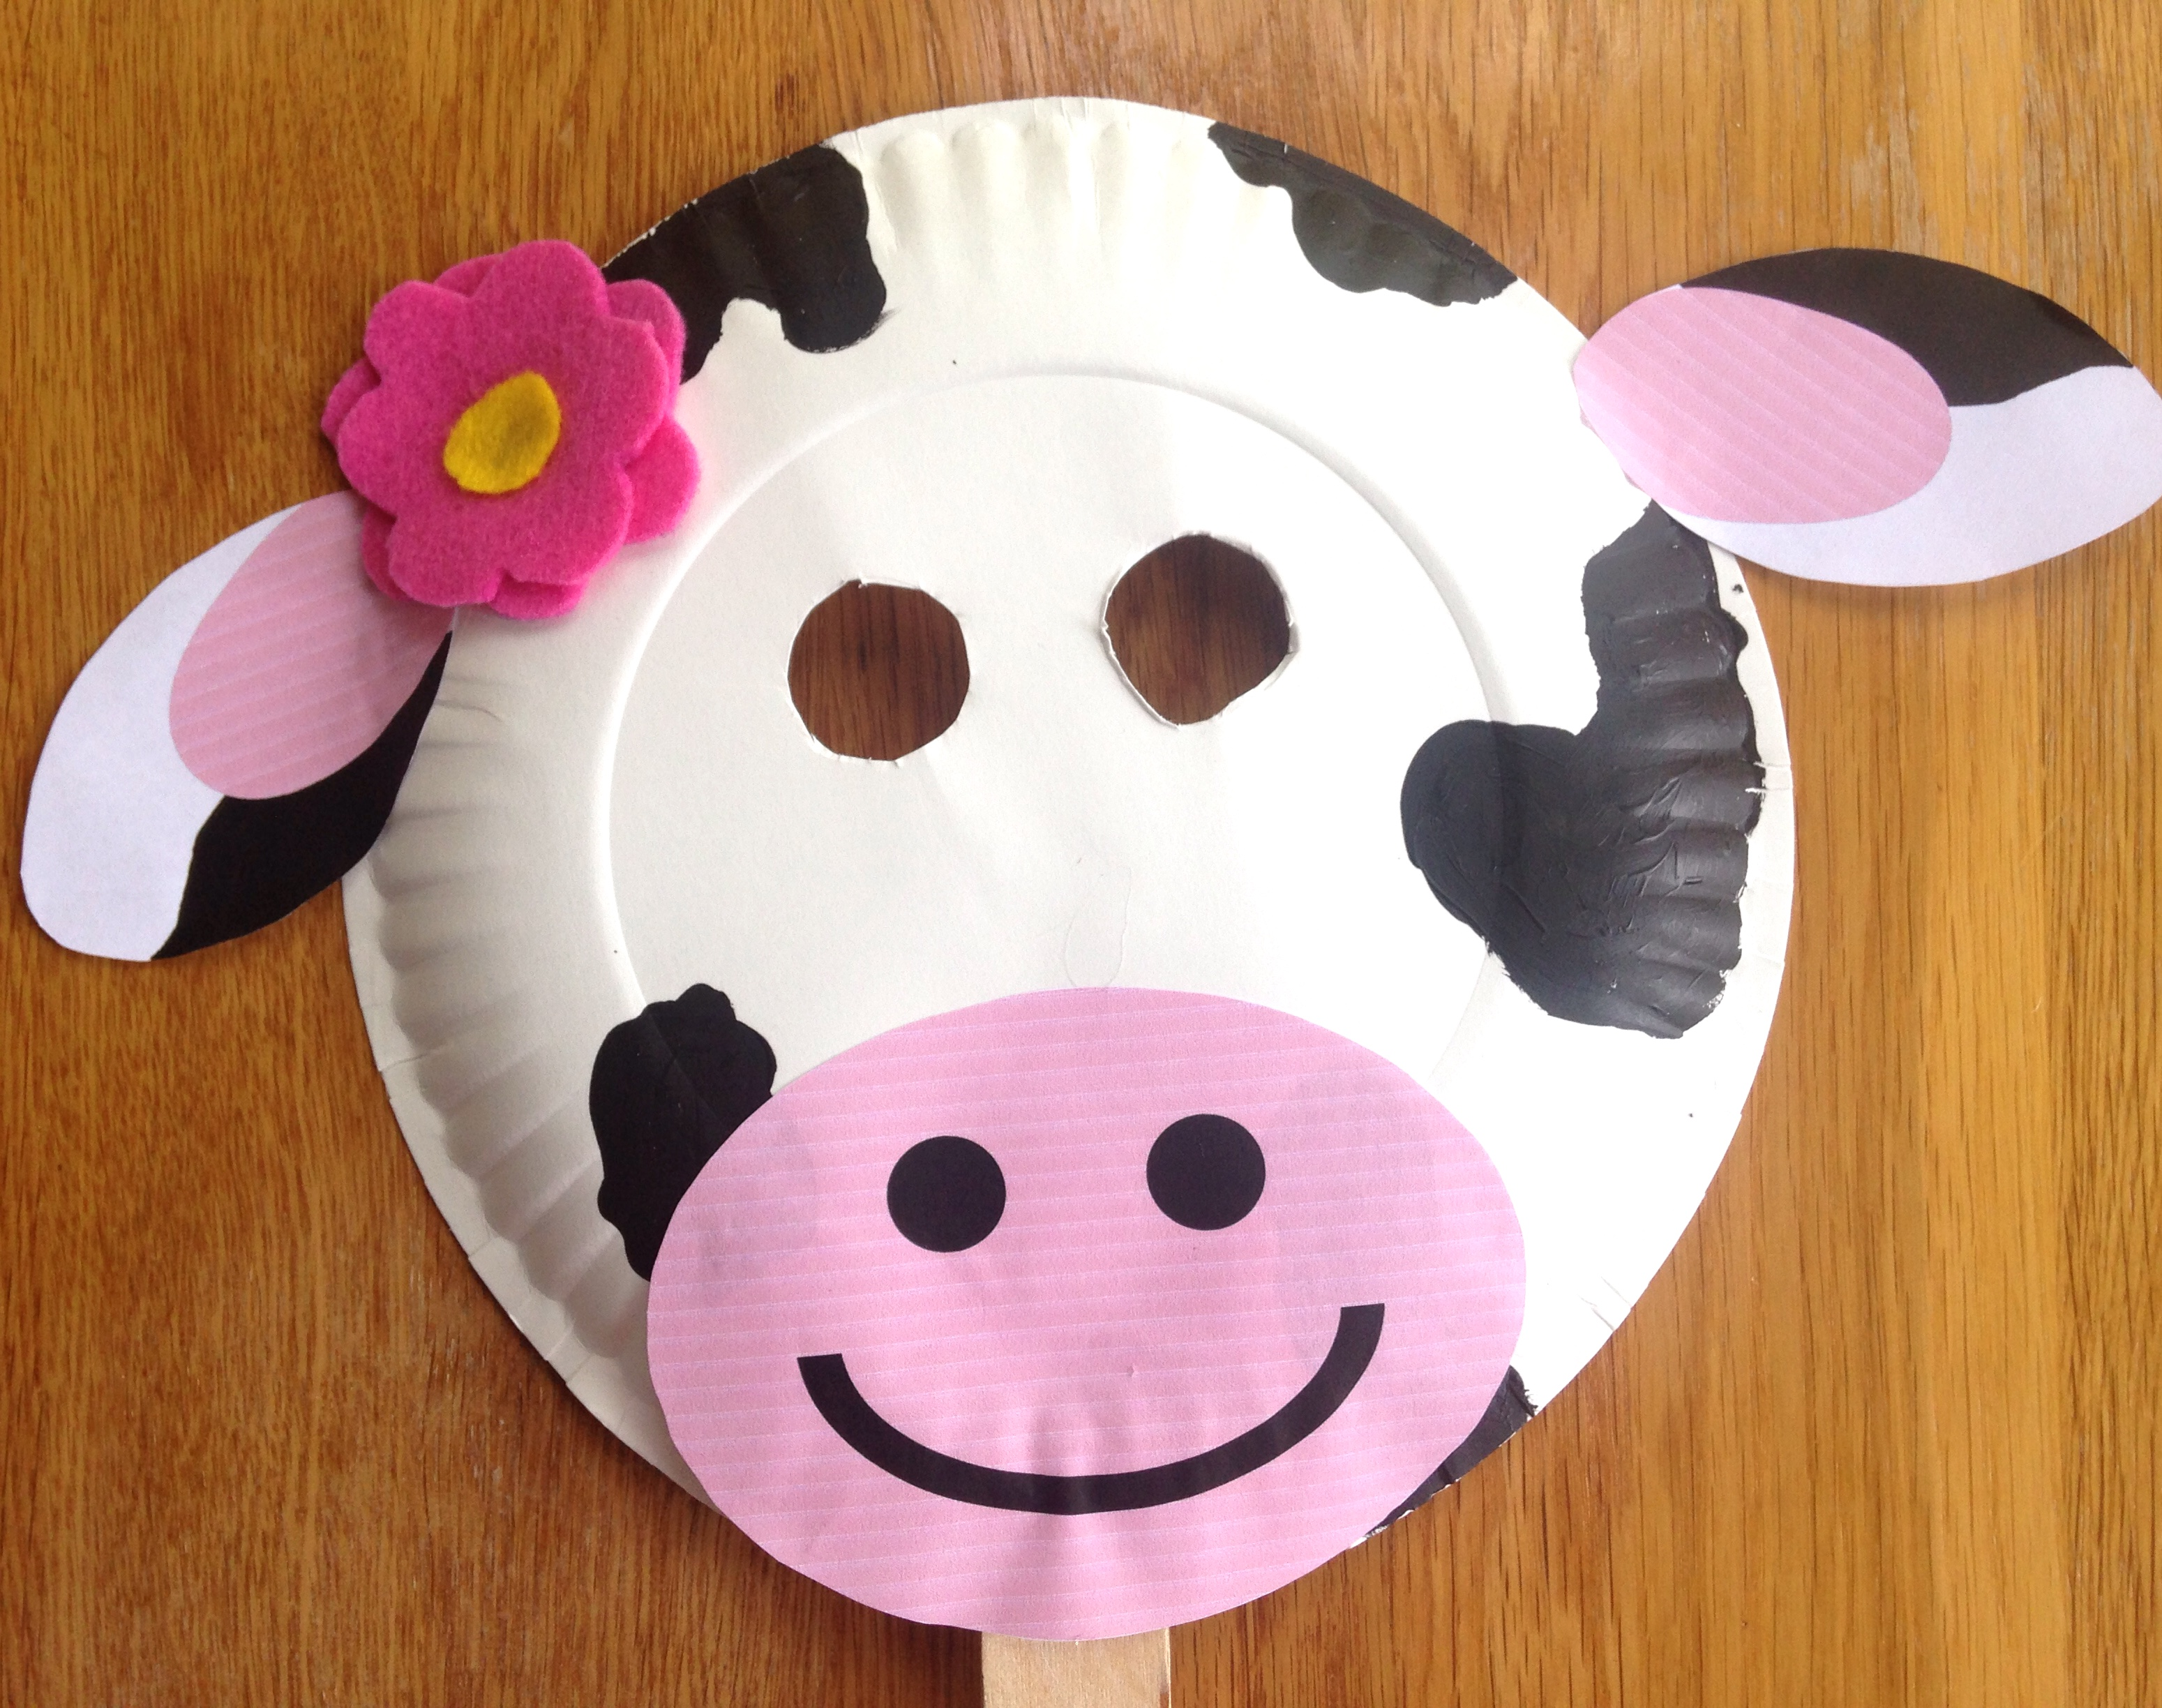 Chick-fil-a Cow Appreciation Day | Cow Appreciation Day Ideas | Chick- & Chick-fil-A Cow Day  Paper Plate Cow Masks With Free Printables ...